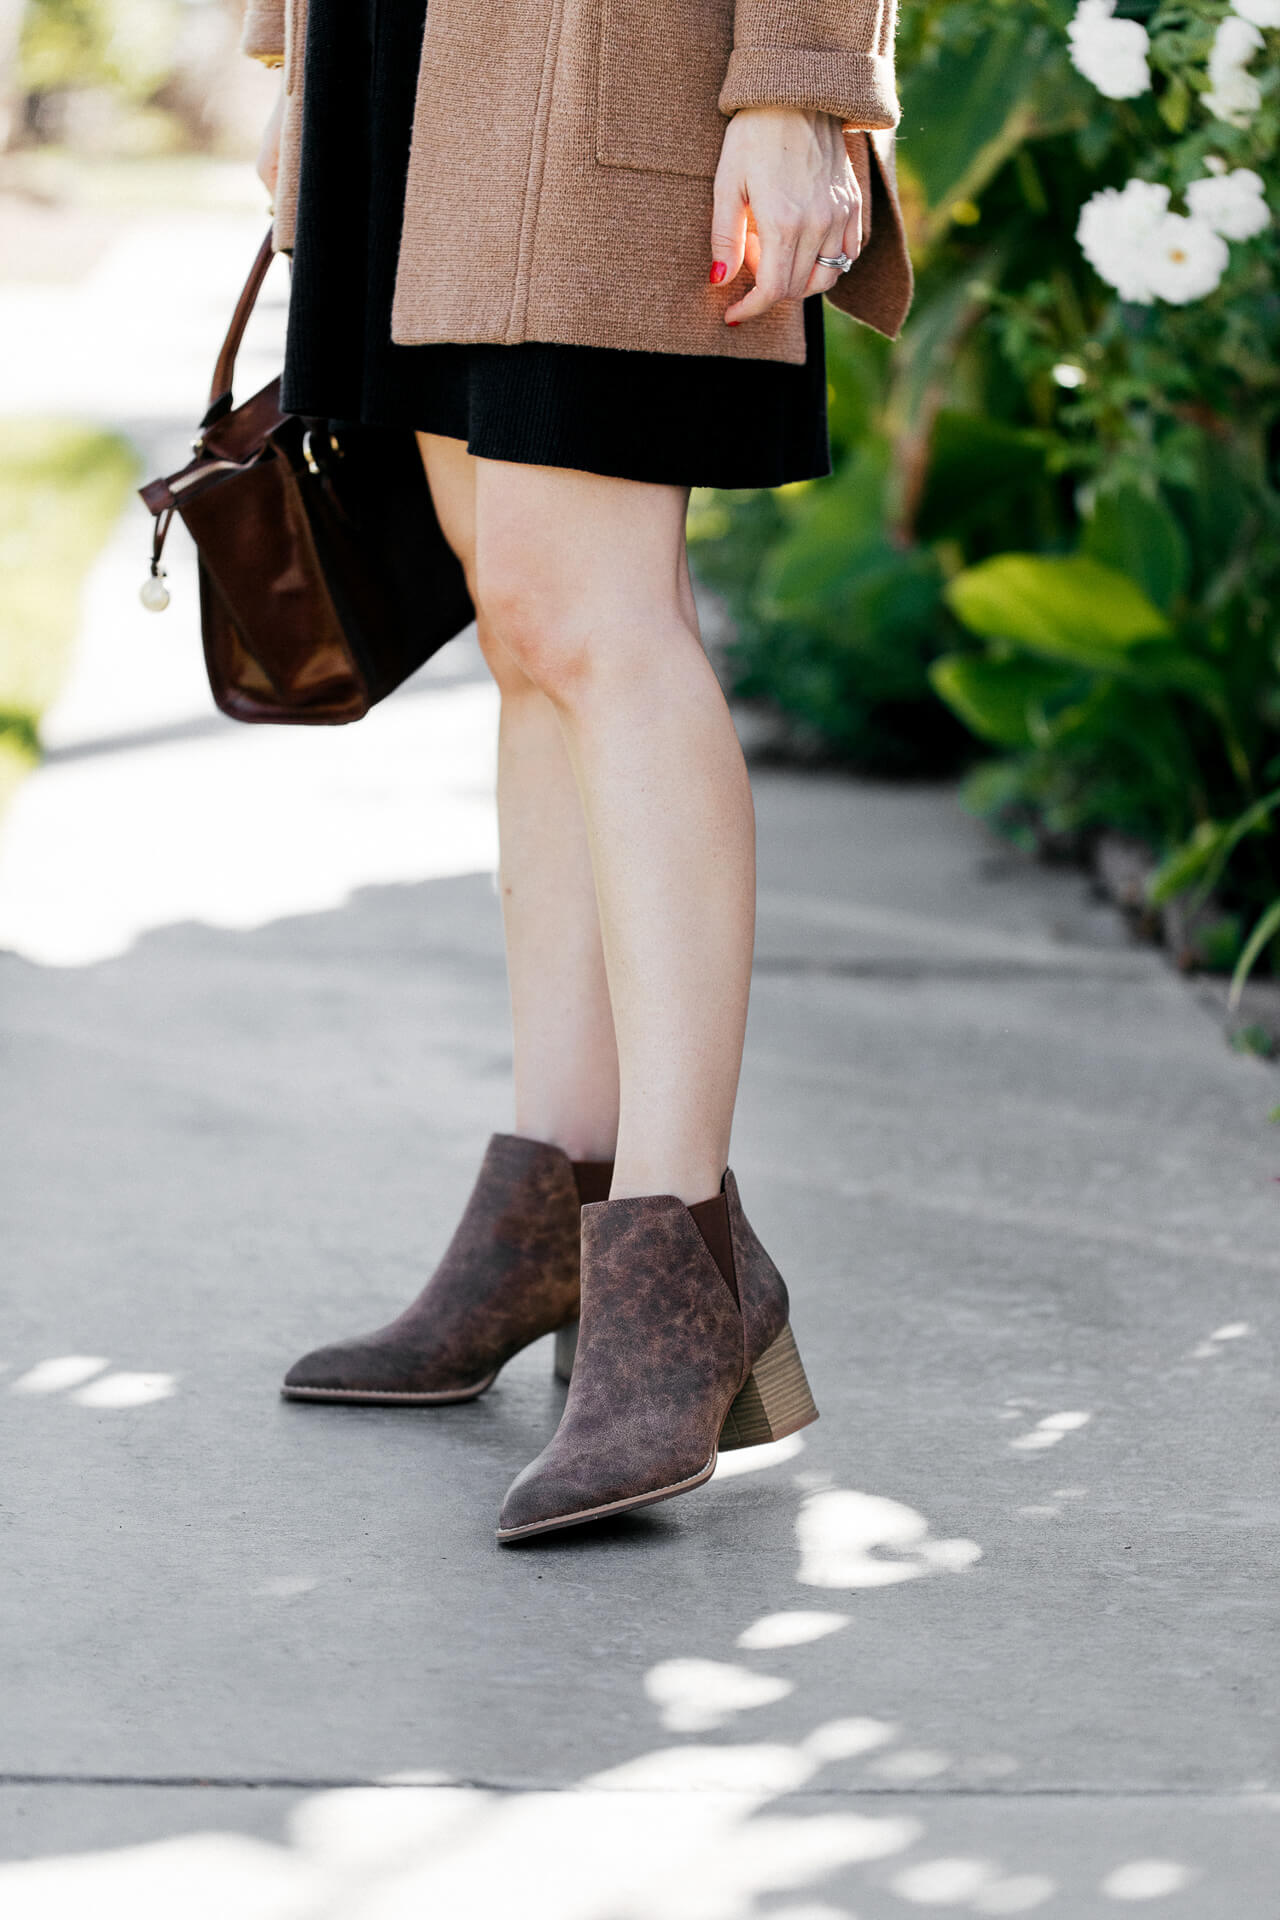 Booties are such a great fall shoe! | M Loves M @marmar